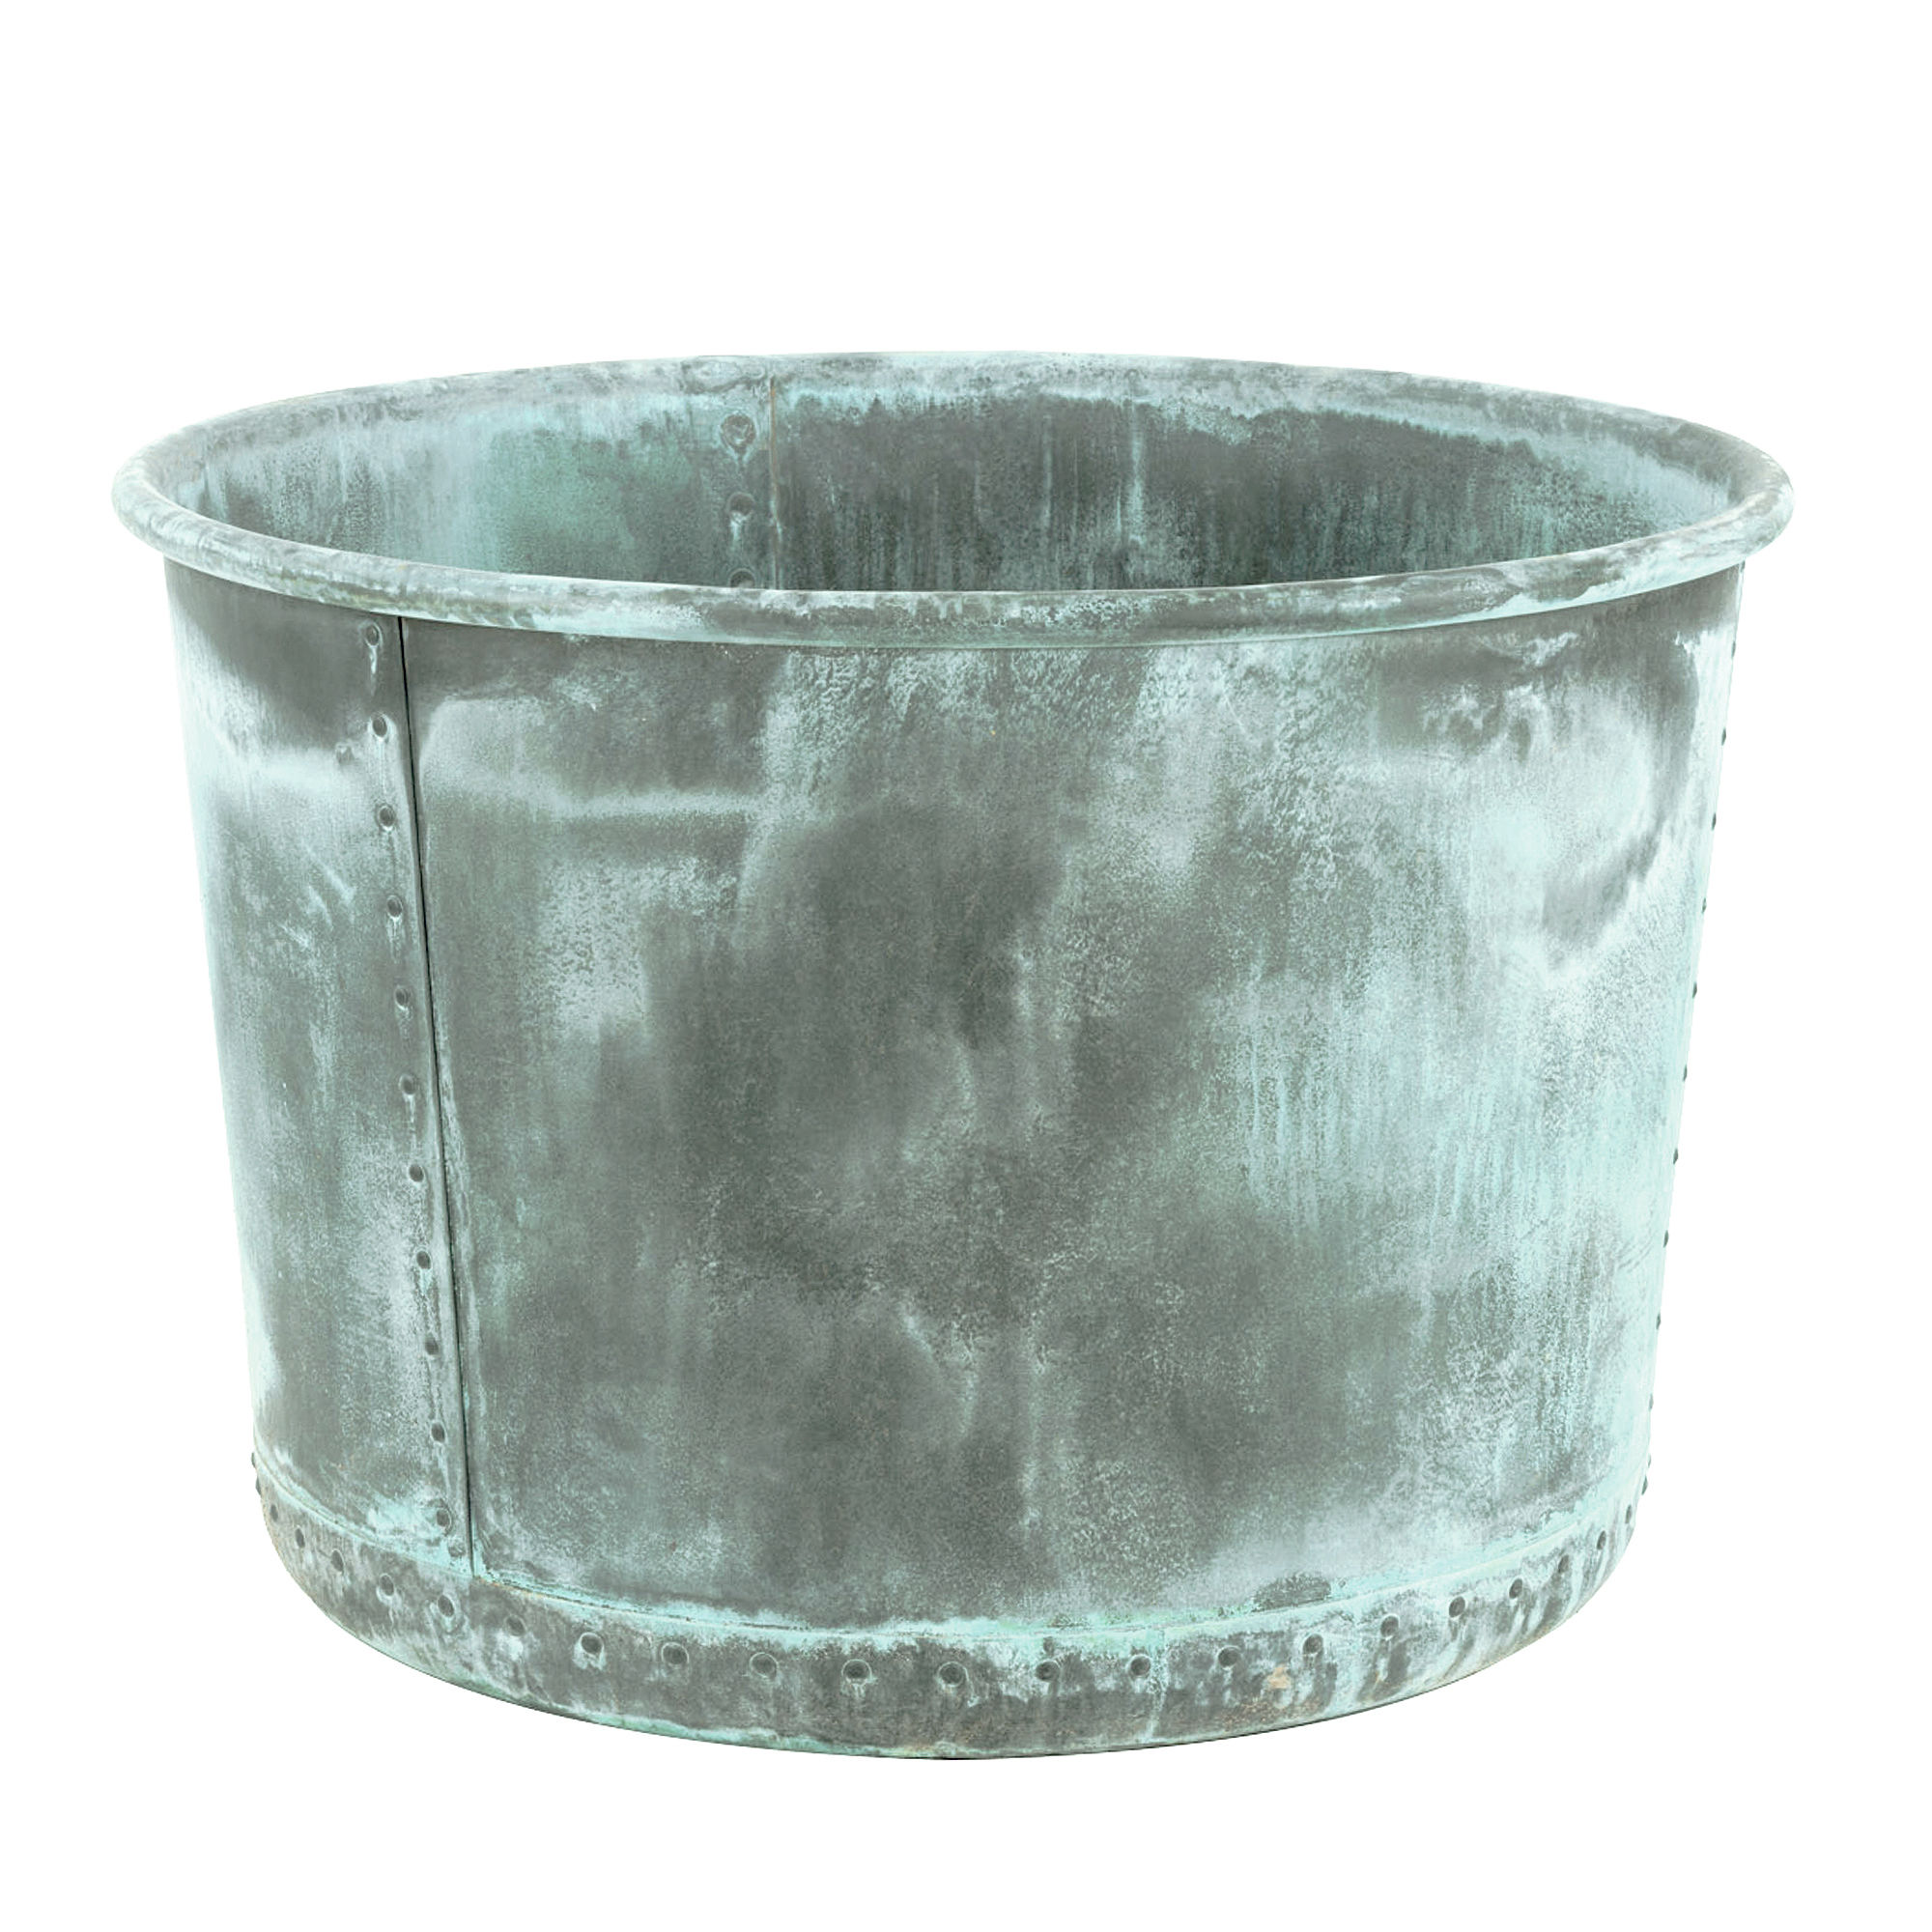 The Circular Copper Garden Planter Large - Rolled Edge